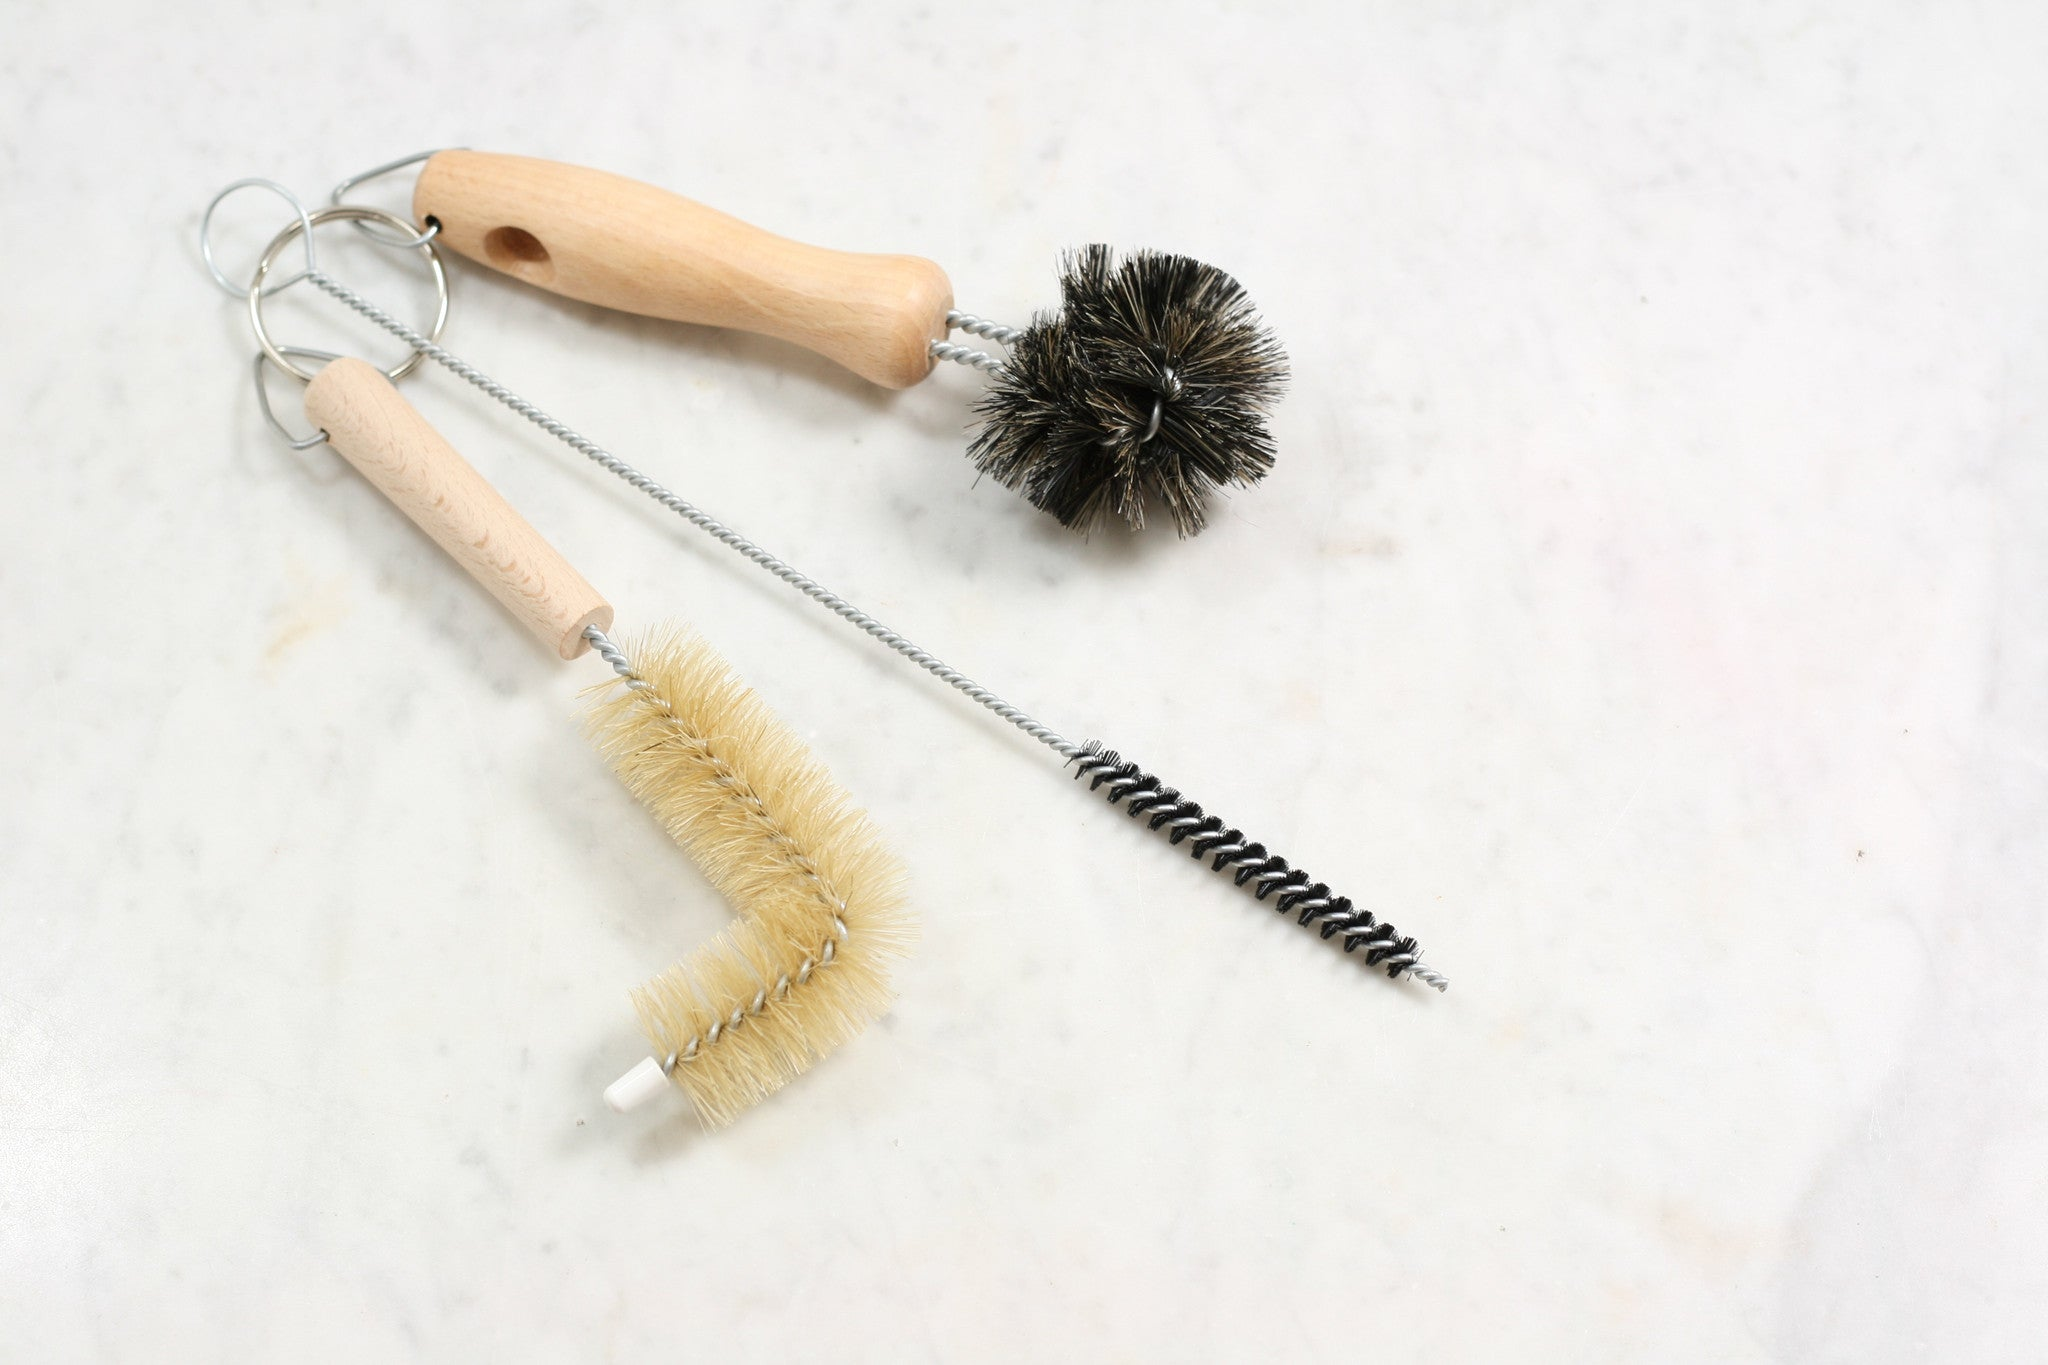 Burstenhaus Redecker Wash Basin Brush Set